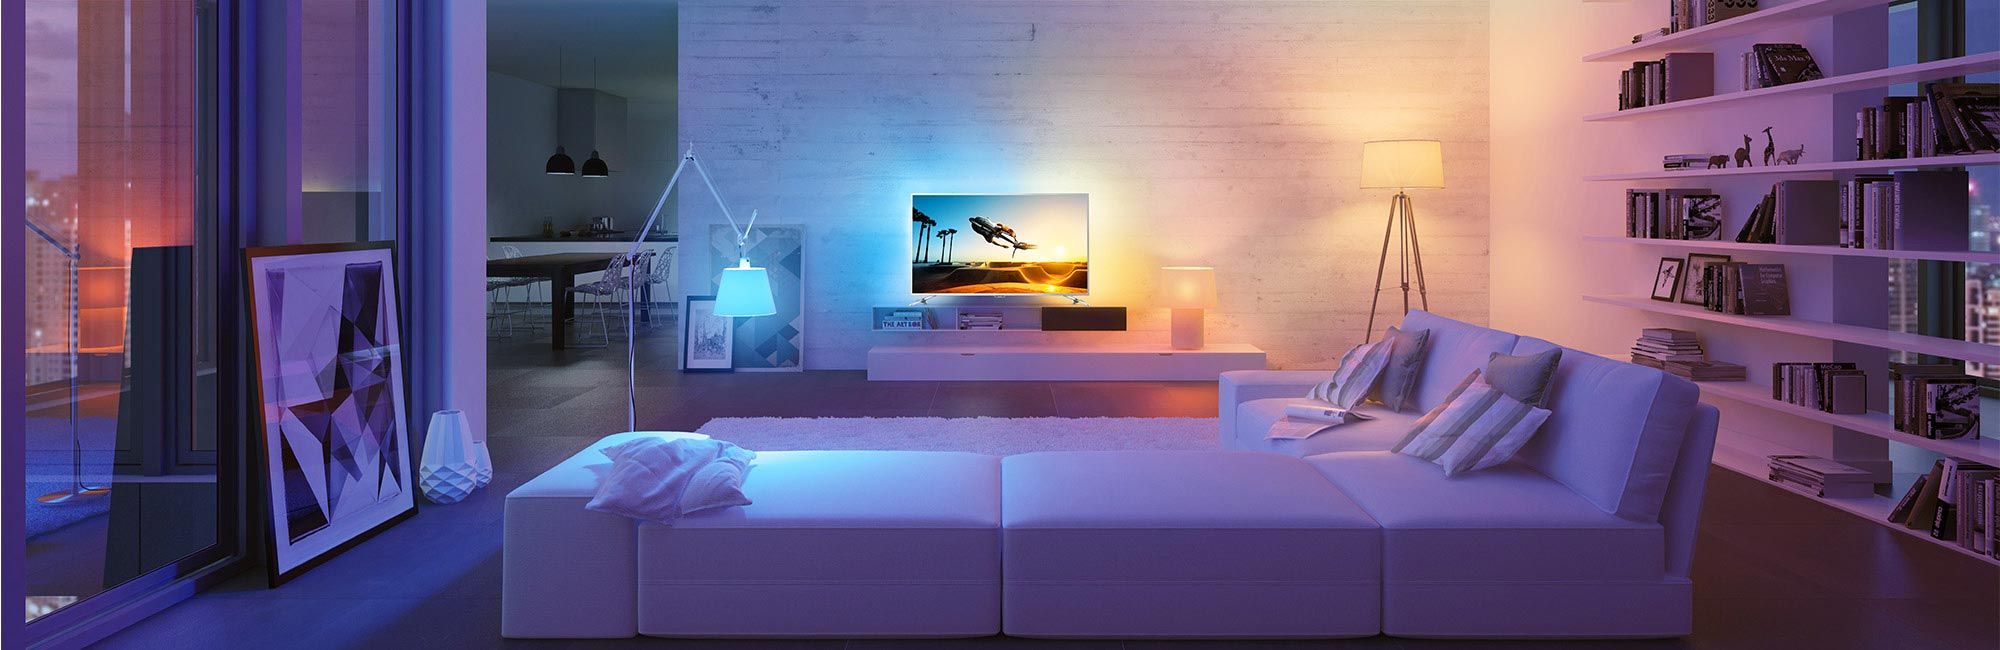 Ambilight-hue-Getty-2000x650-2